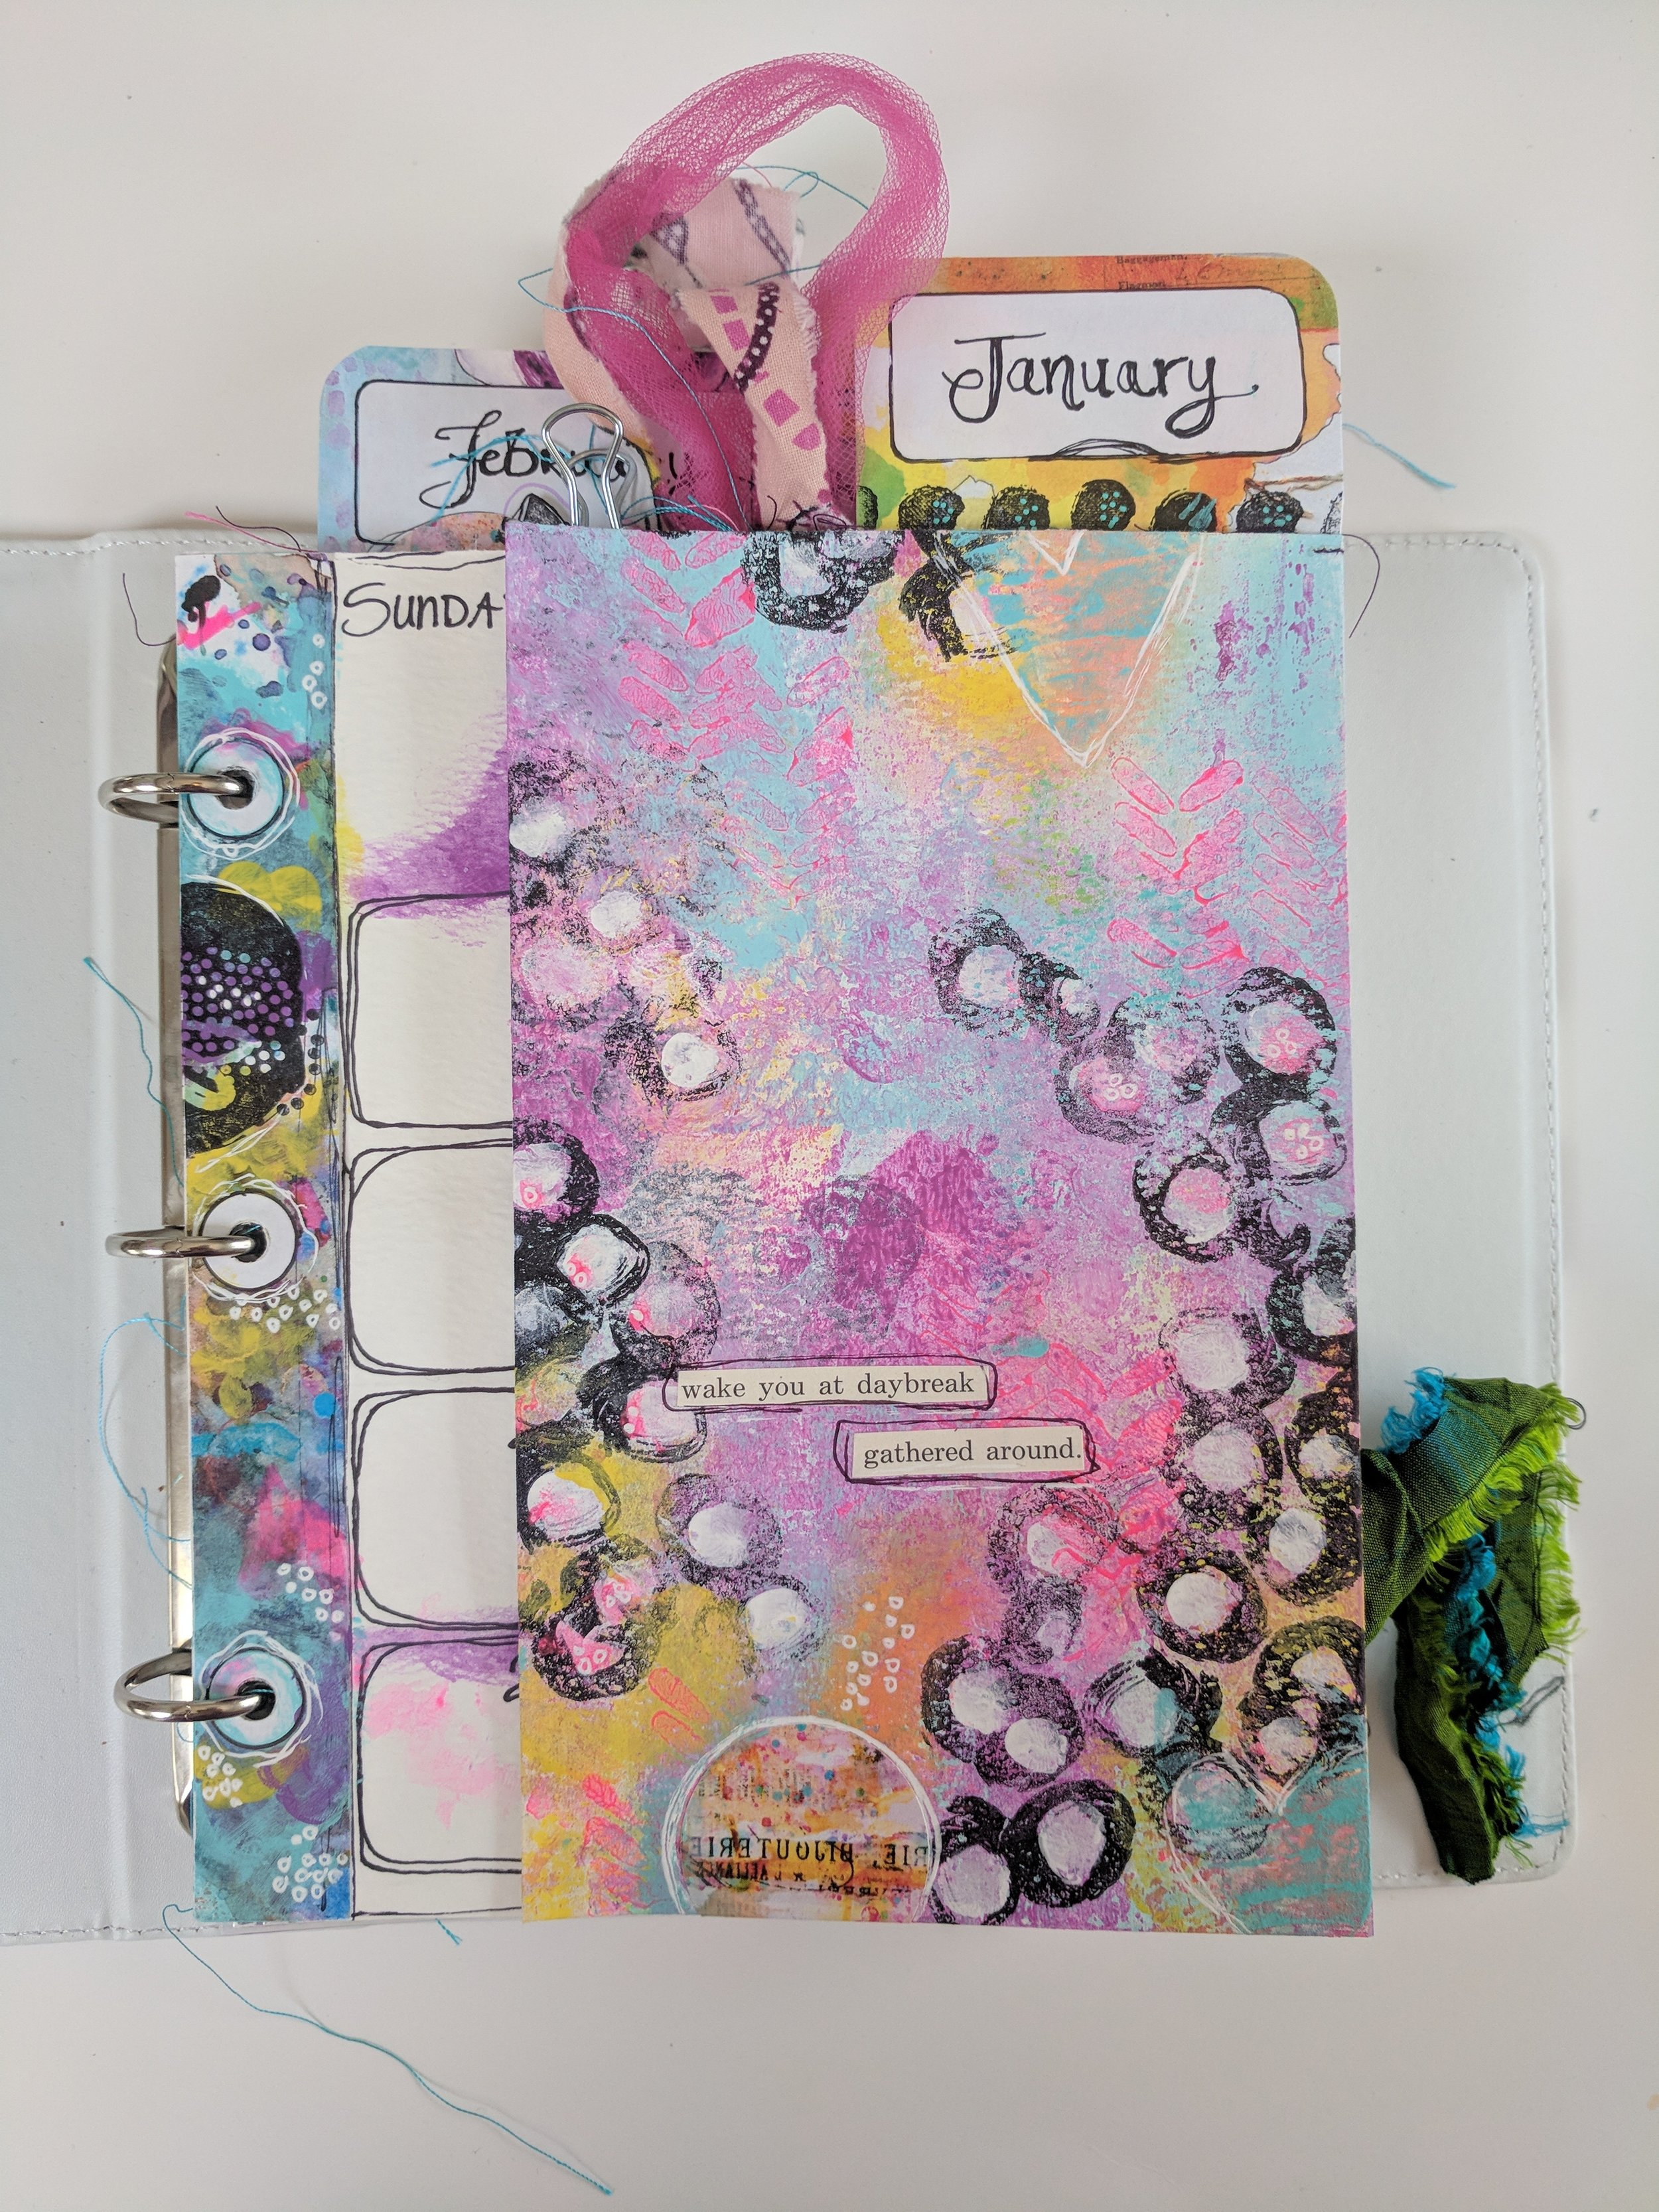 Check out this video tutorial as Design Team member Anna Friesen creates this beautiful UnPlanner as her project. Anna takes you step by step through creating this UnPlanner spread for which is perfect for organising all of your arty adventures. She uses Art Pops™ and Paperbag Studios Stamps. @robenmarie @annawho #robenmarie #robenmariedesignteam #paperbagstudios #artpops #mixedmedia #diy